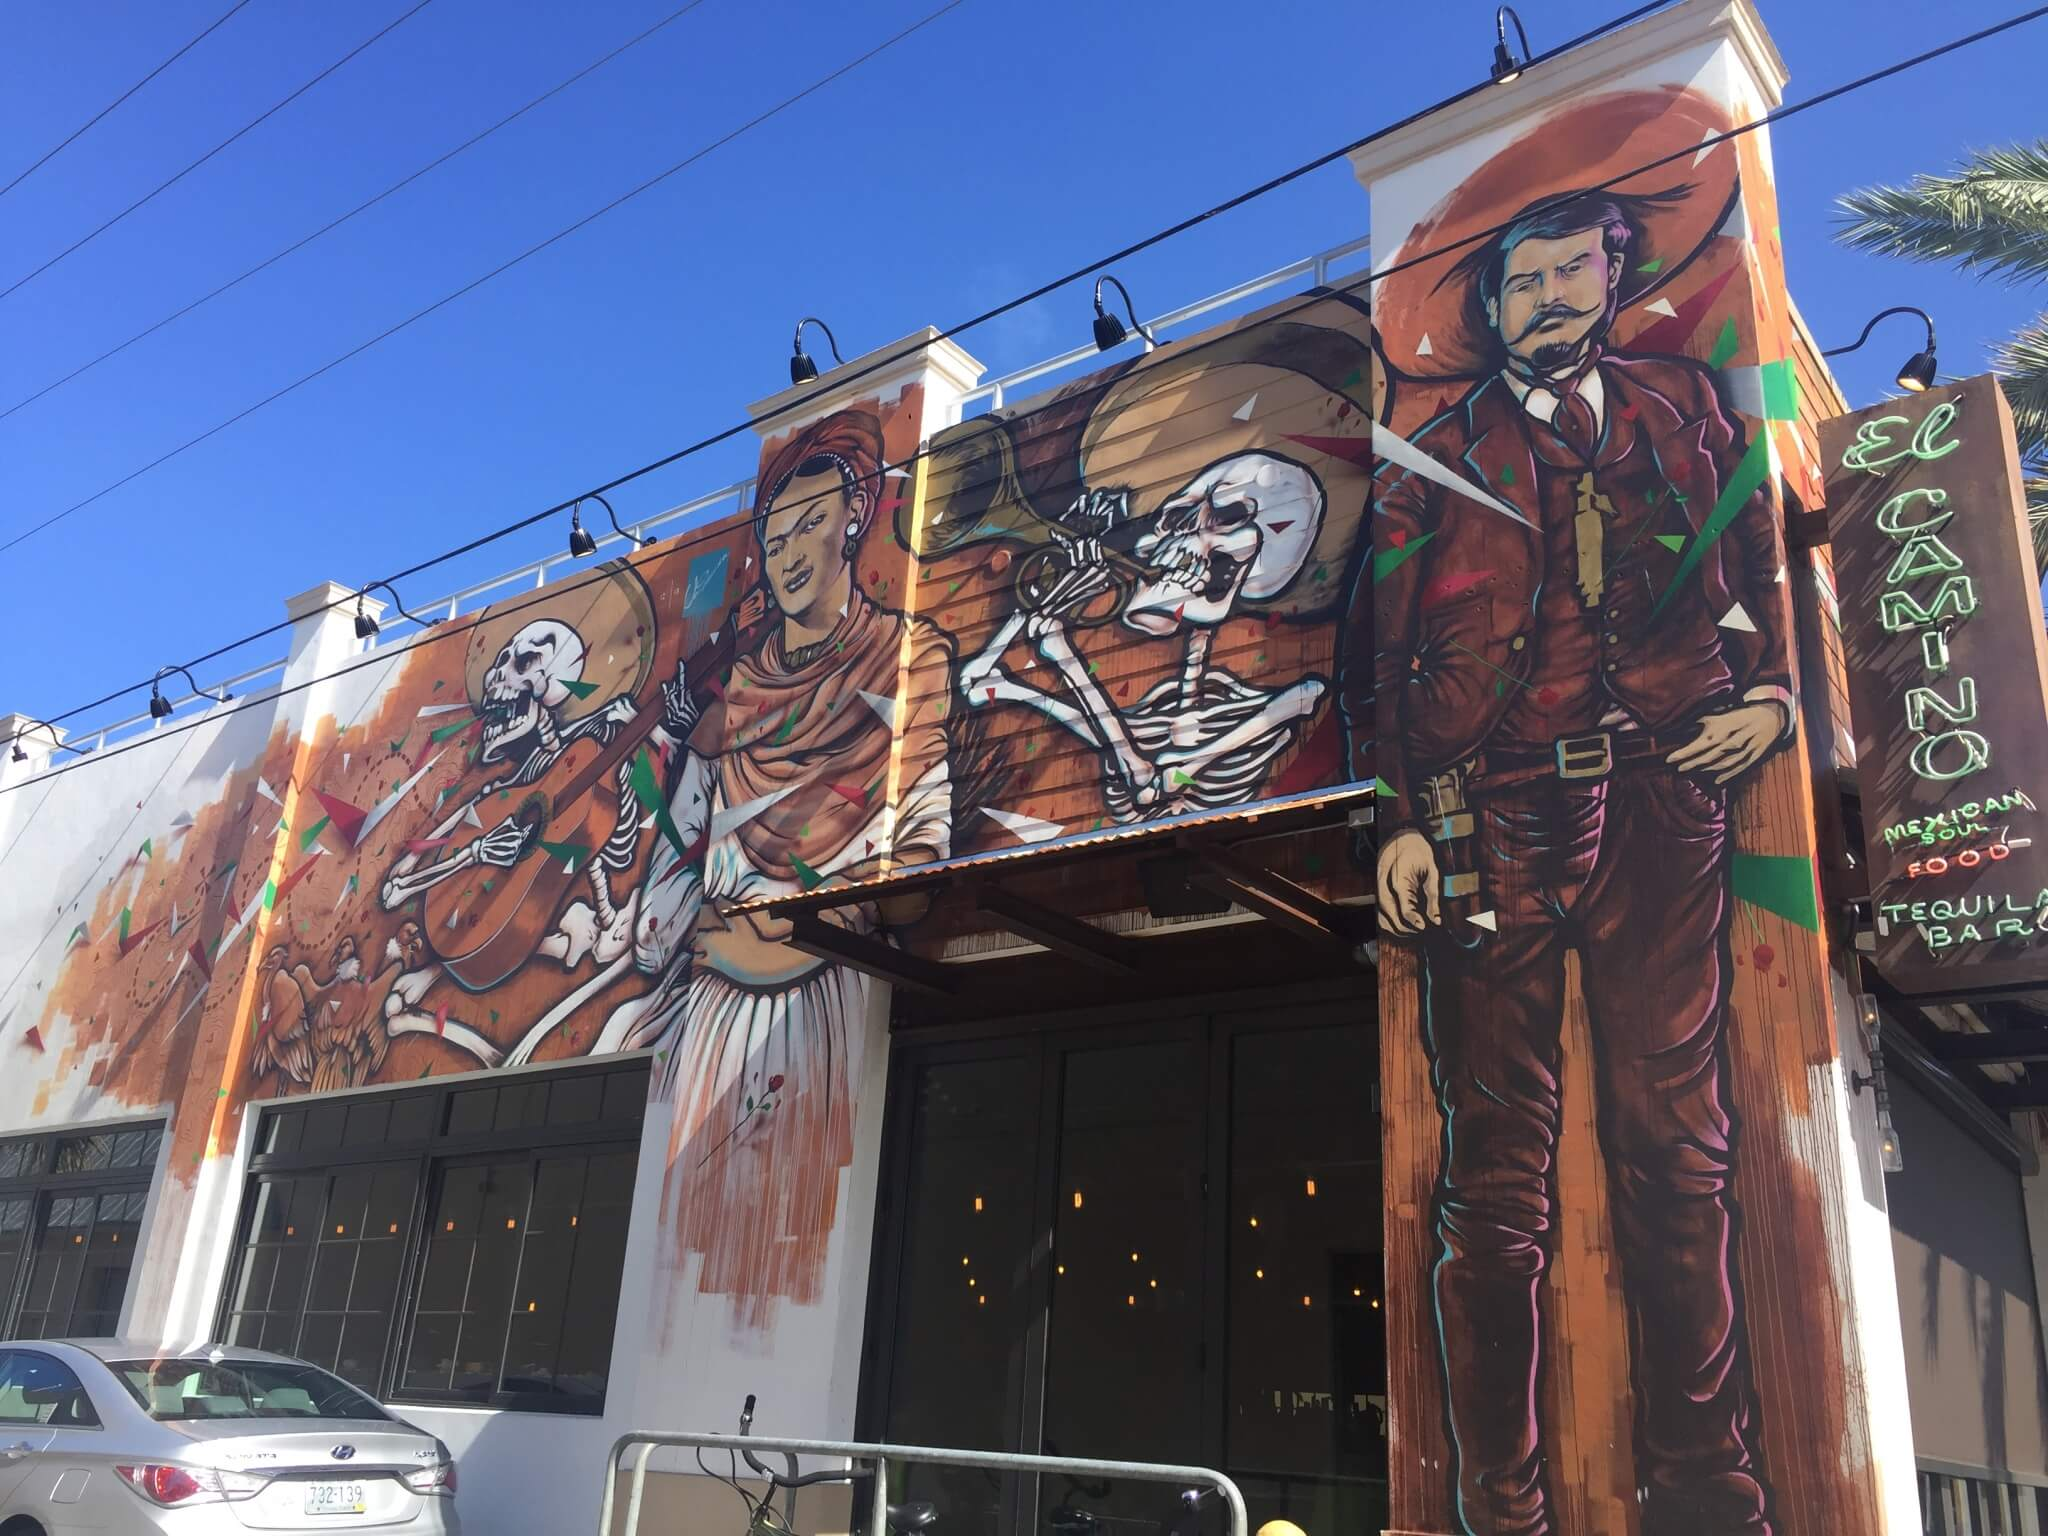 El Camino Mexican Soul Food Tequila Bar Delray Beach - A Woman of Class, Warmth, Cordiality, Substance and Determination: Welcome to the Custom Made World of Jen